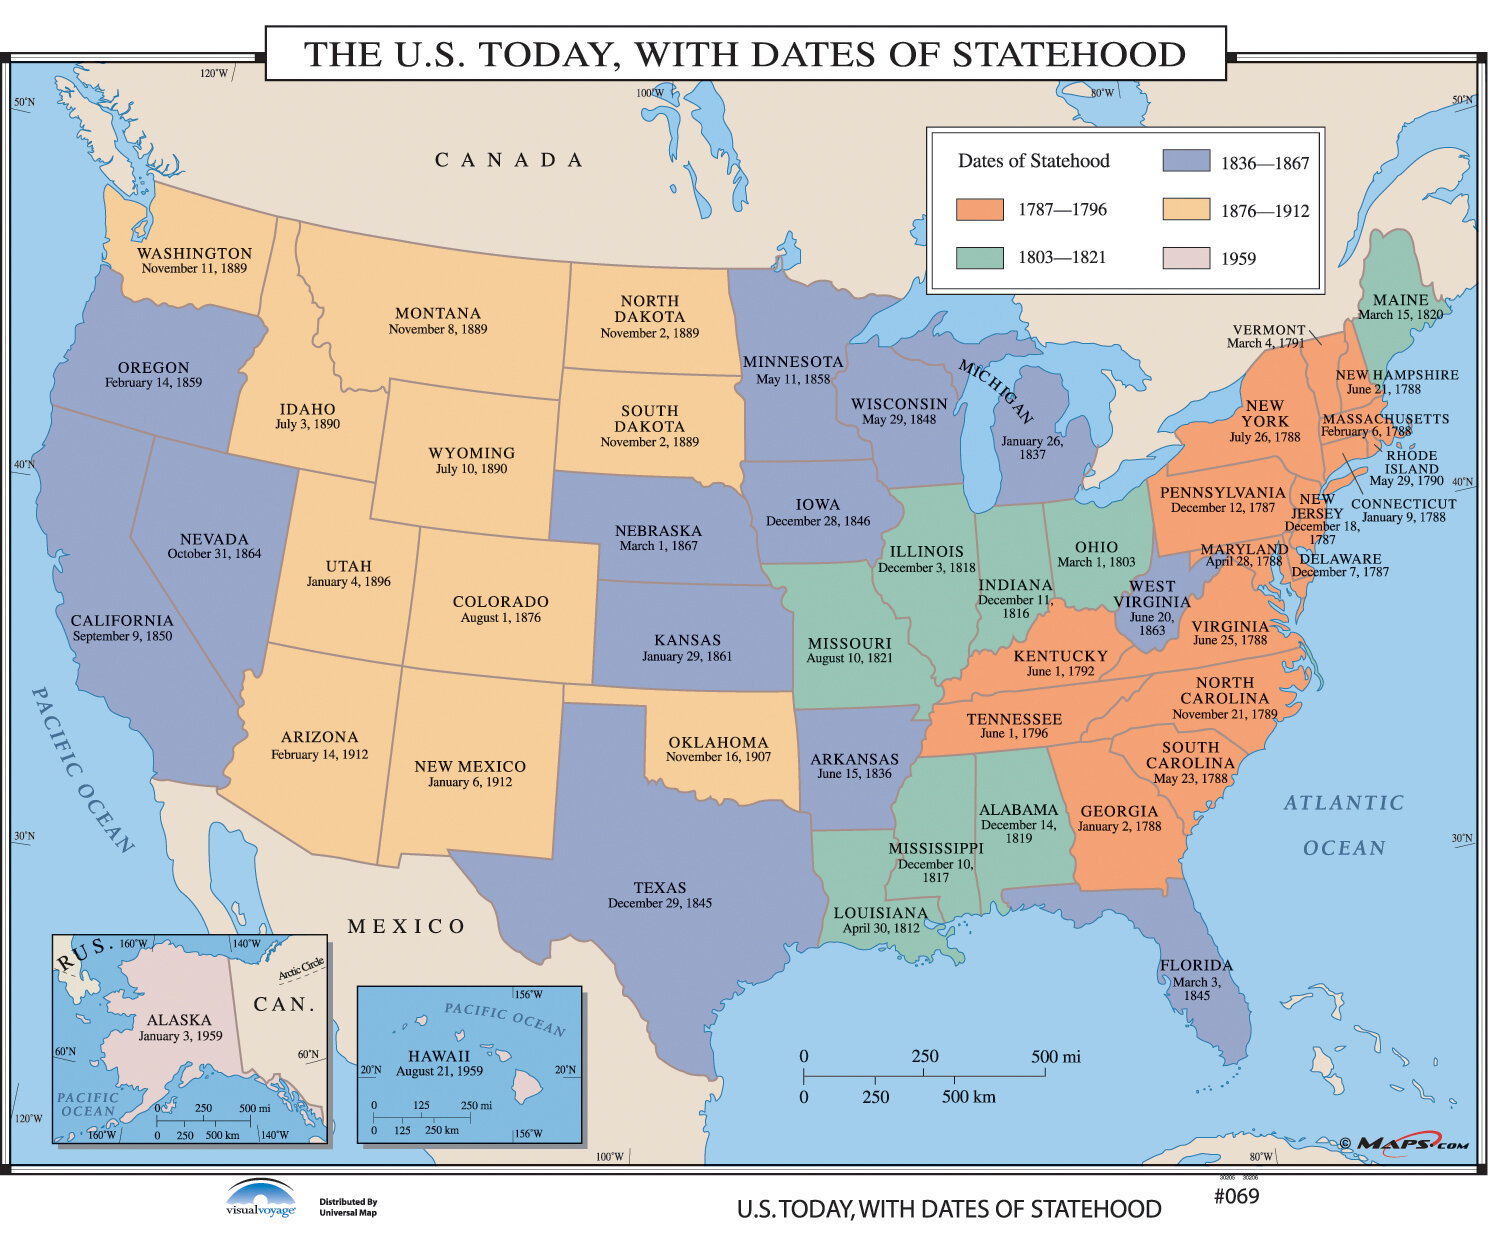 Universal Map U.S. History Wall Maps - U.S. Today, With Dates of ...